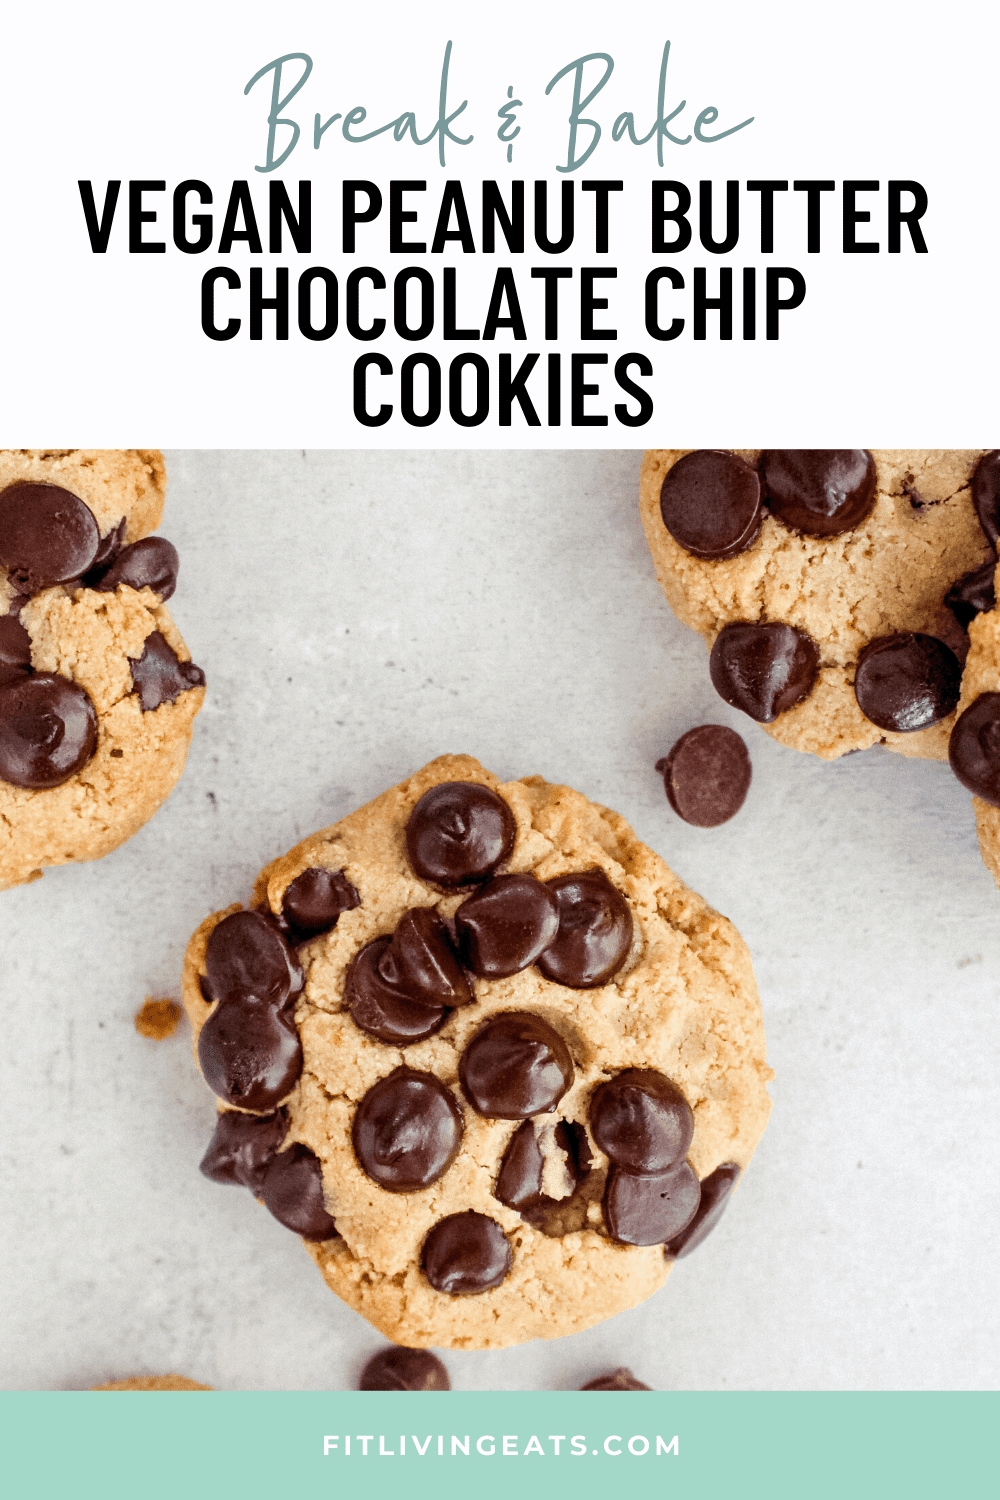 Break And Bake Cookies Peanut Butter Chocolate Chip Vegan Recipe Recipe In 2020 Peanut Butter Chocolate Chip Dairy Free Recipes Dessert Vegan Cookies Recipes